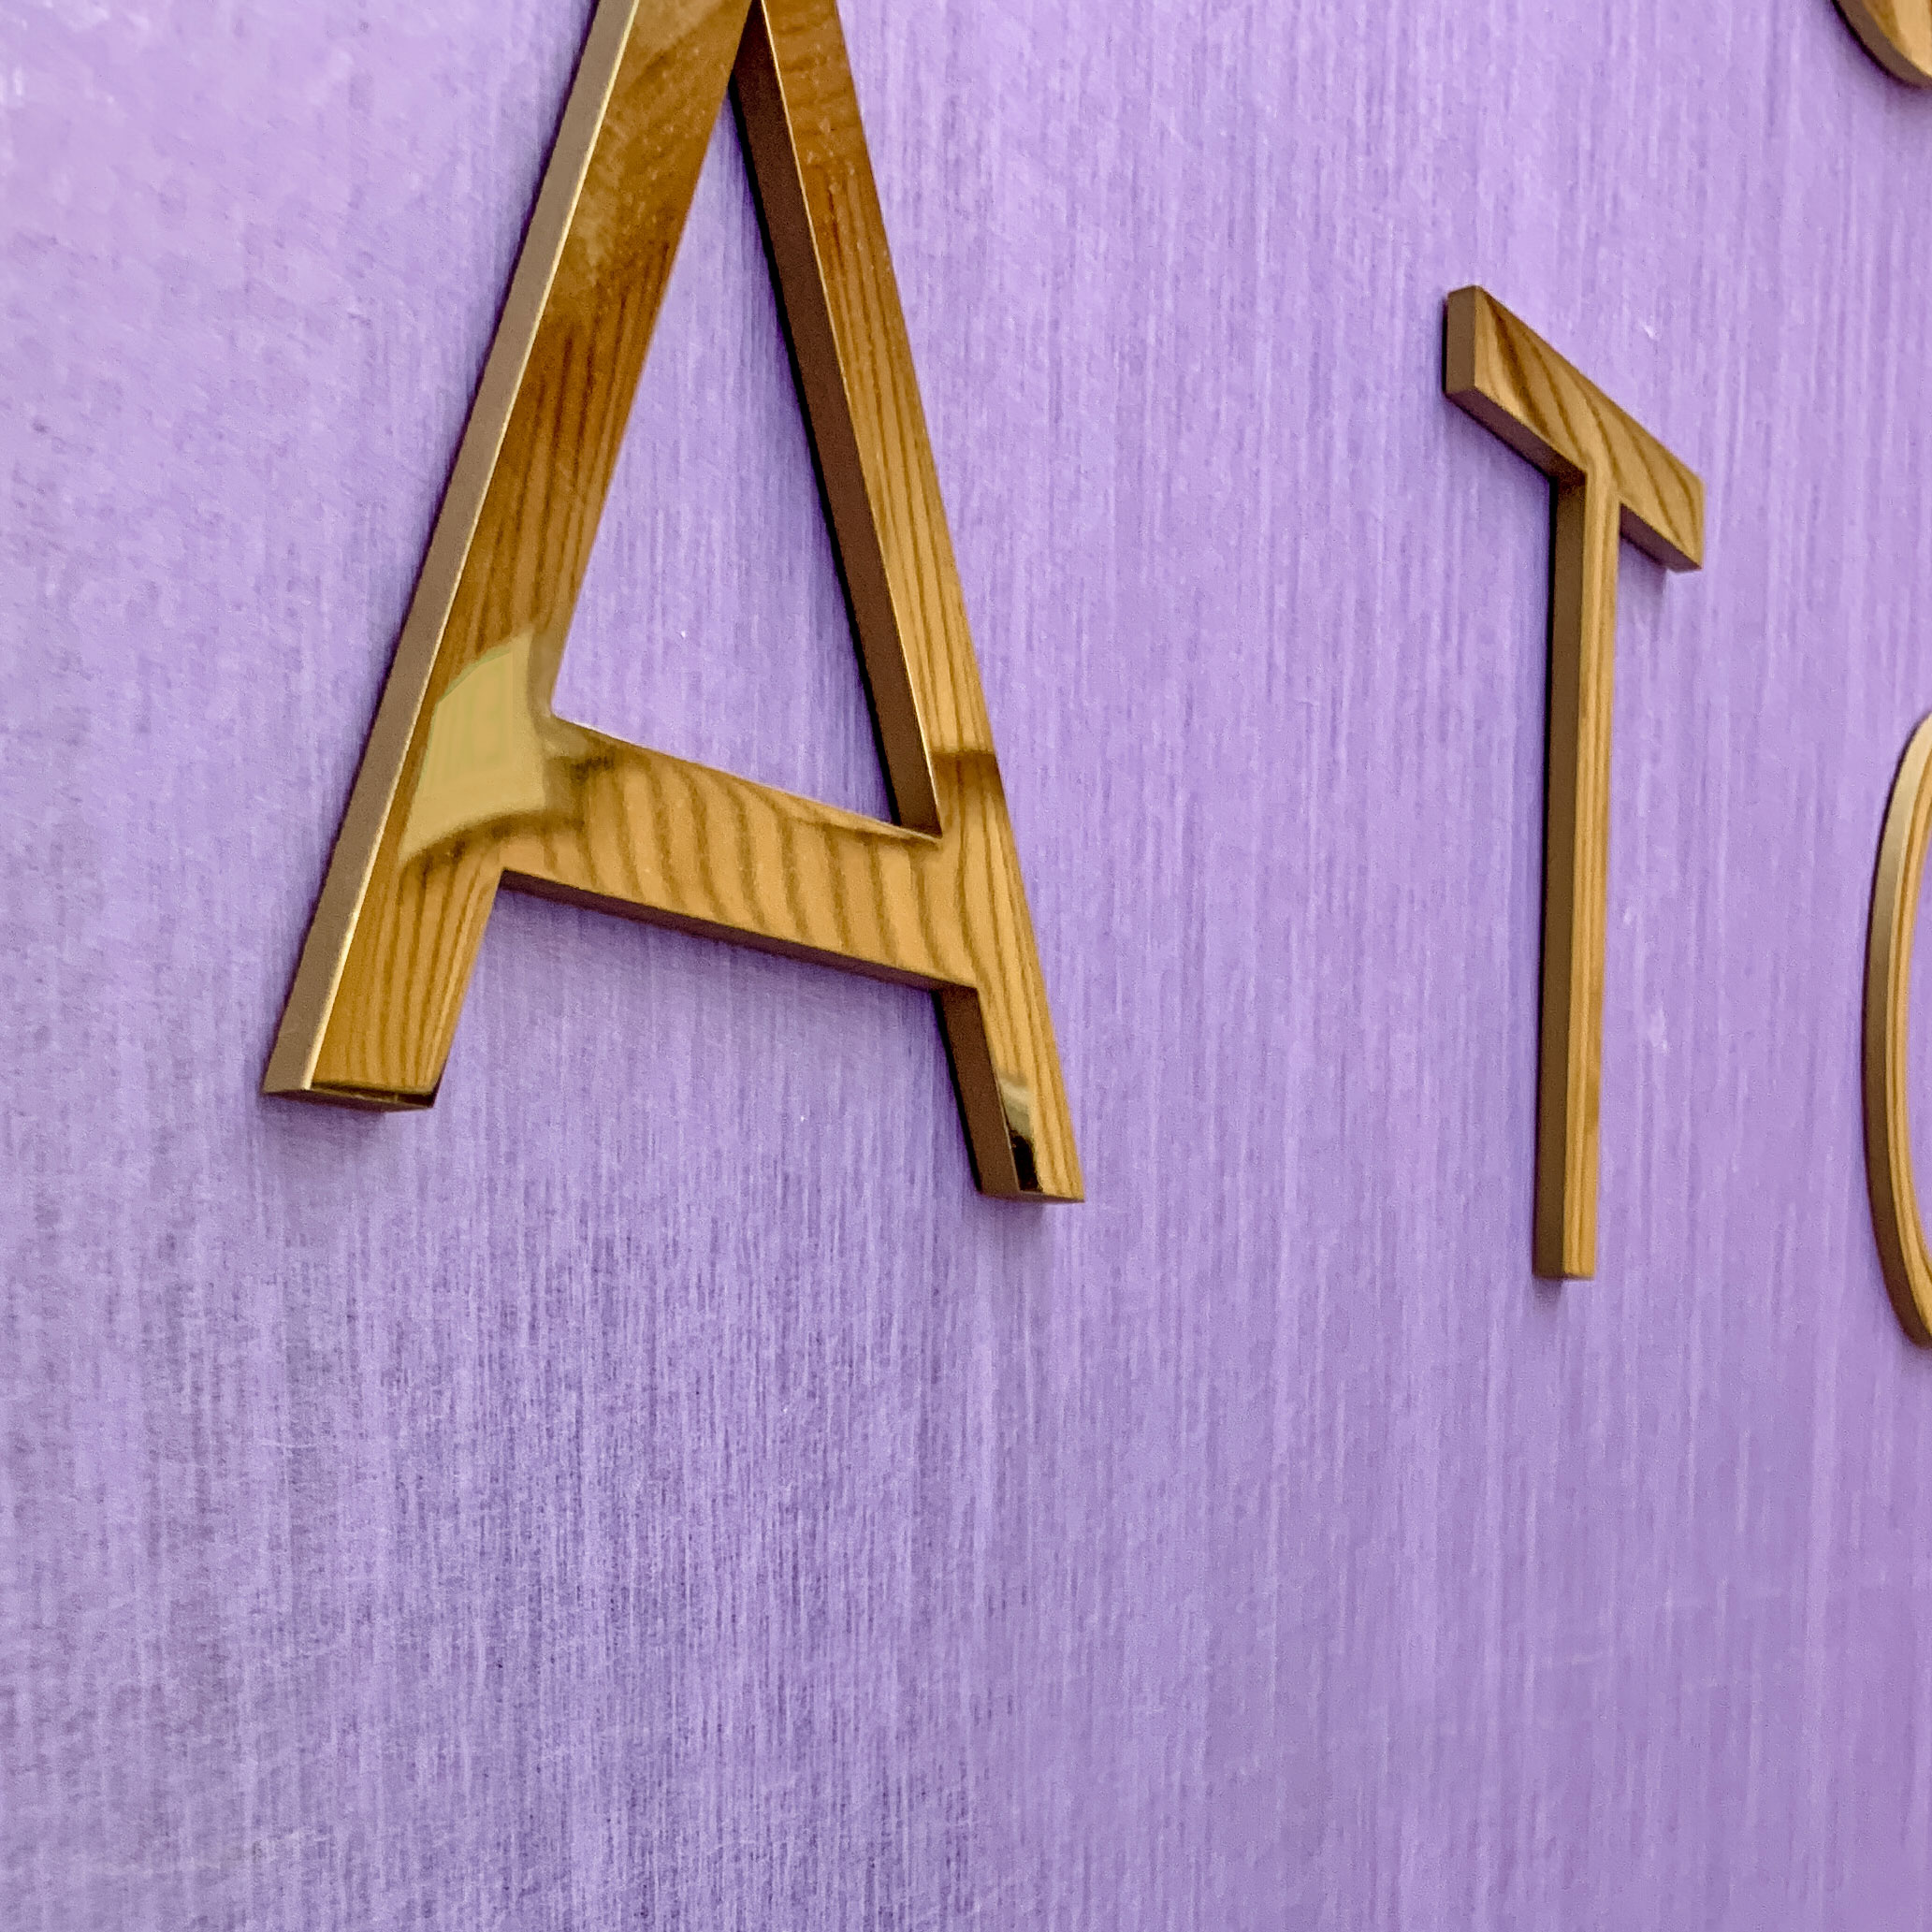 Solid polished brass sign on purple silk wall for the lobby at Tatcha, a company that creates luxury Japanese beauty products.